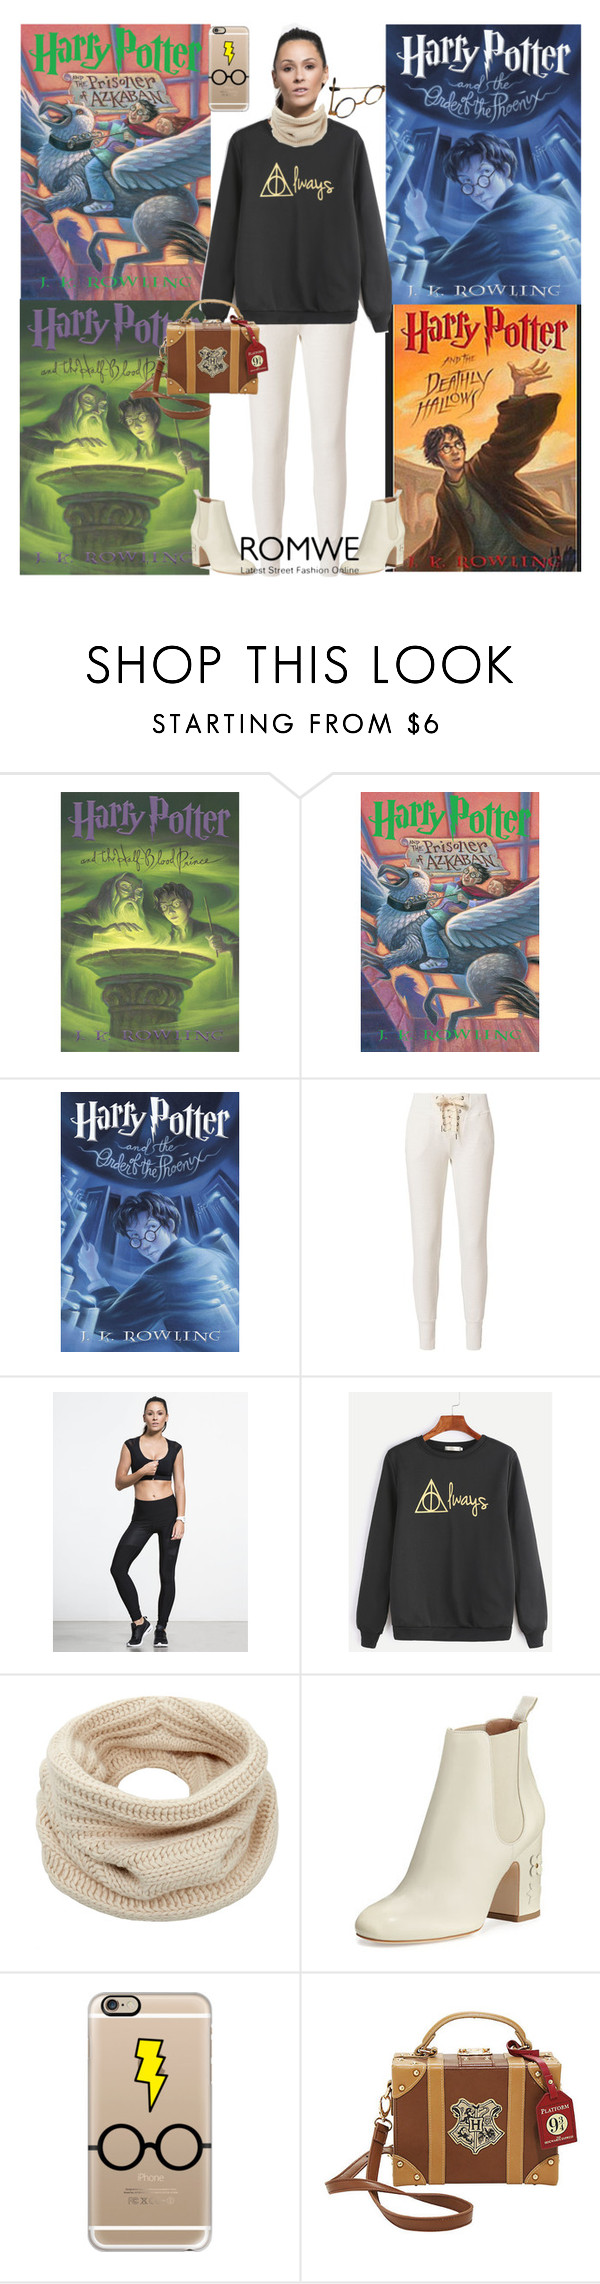 """""""Harry Potter Sweatshirt Contest!"""" by bevmardesigns ❤ liked on Polyvore featuring NSF, Helmut Lang, Laurence Dacade and Casetify"""